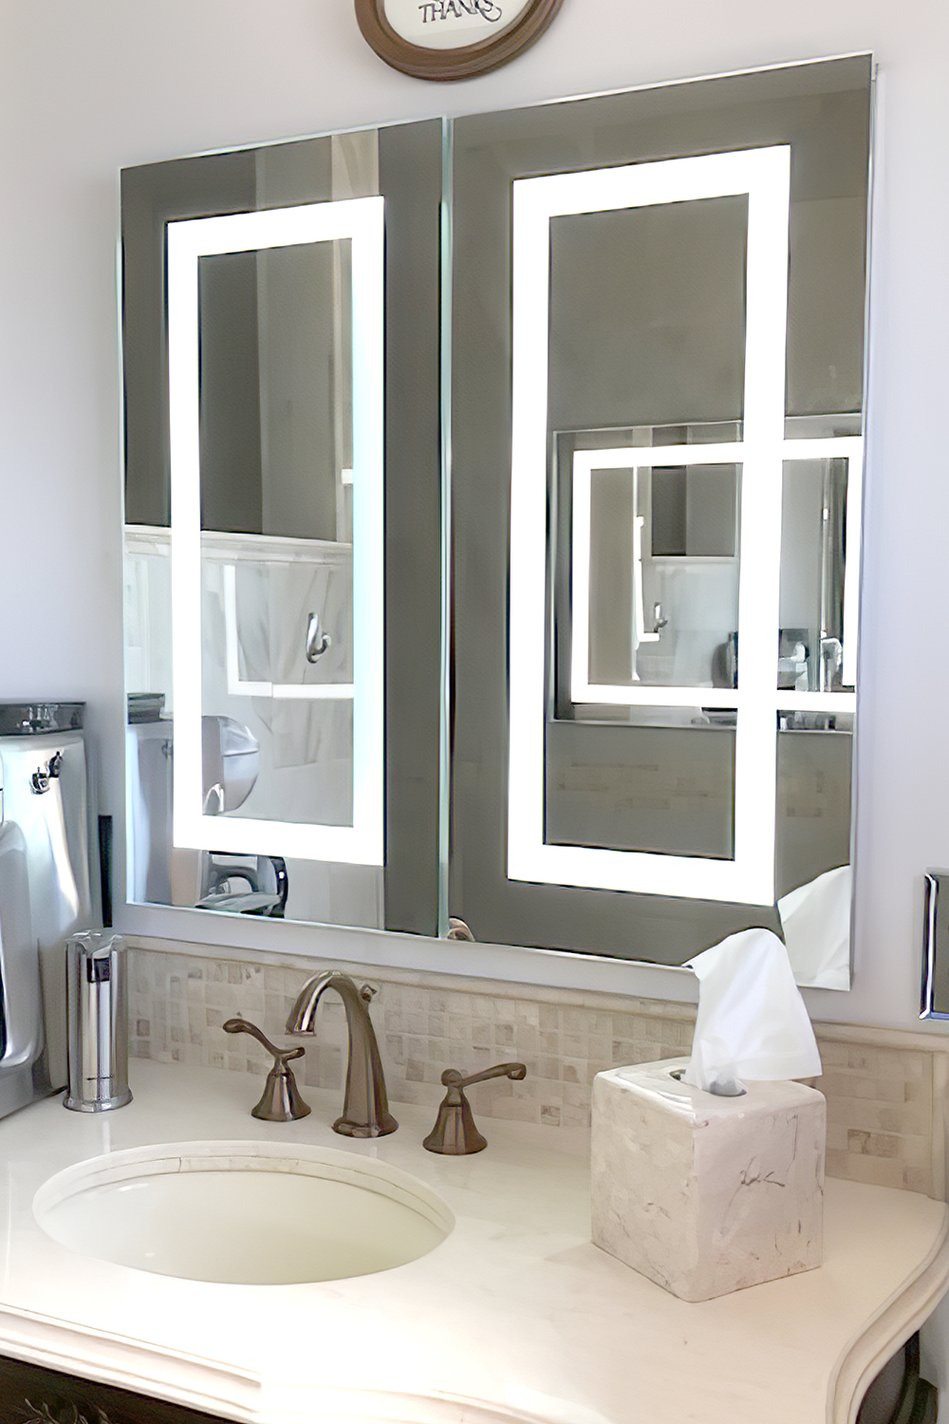 lighted led bathroom mirror medicine cabinet 32 x 32 flush mounted hinged on left and right 6000 kelvin